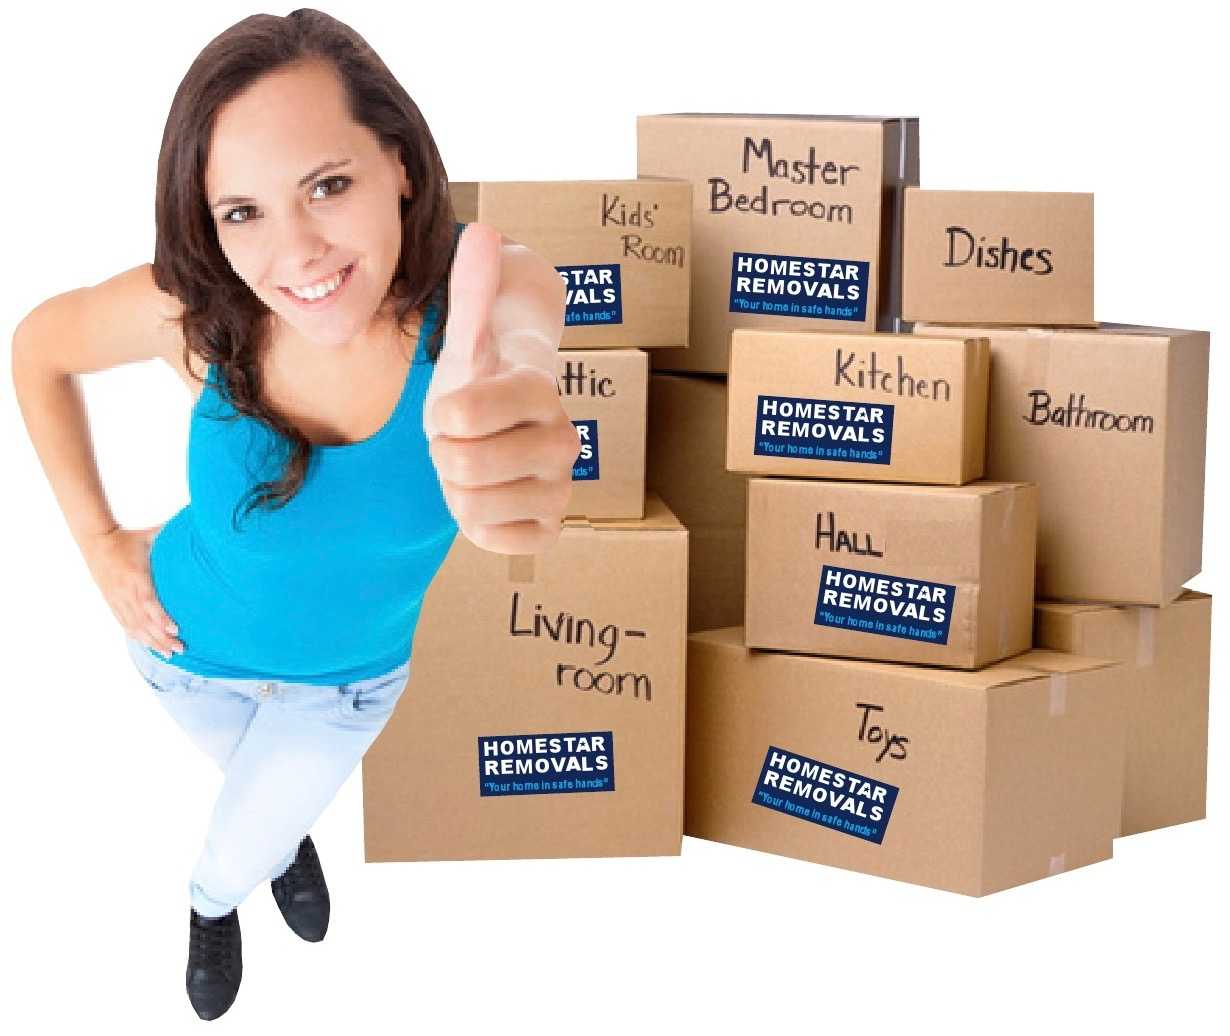 Homestar Removals of Uxbridge offer a professional packing service too